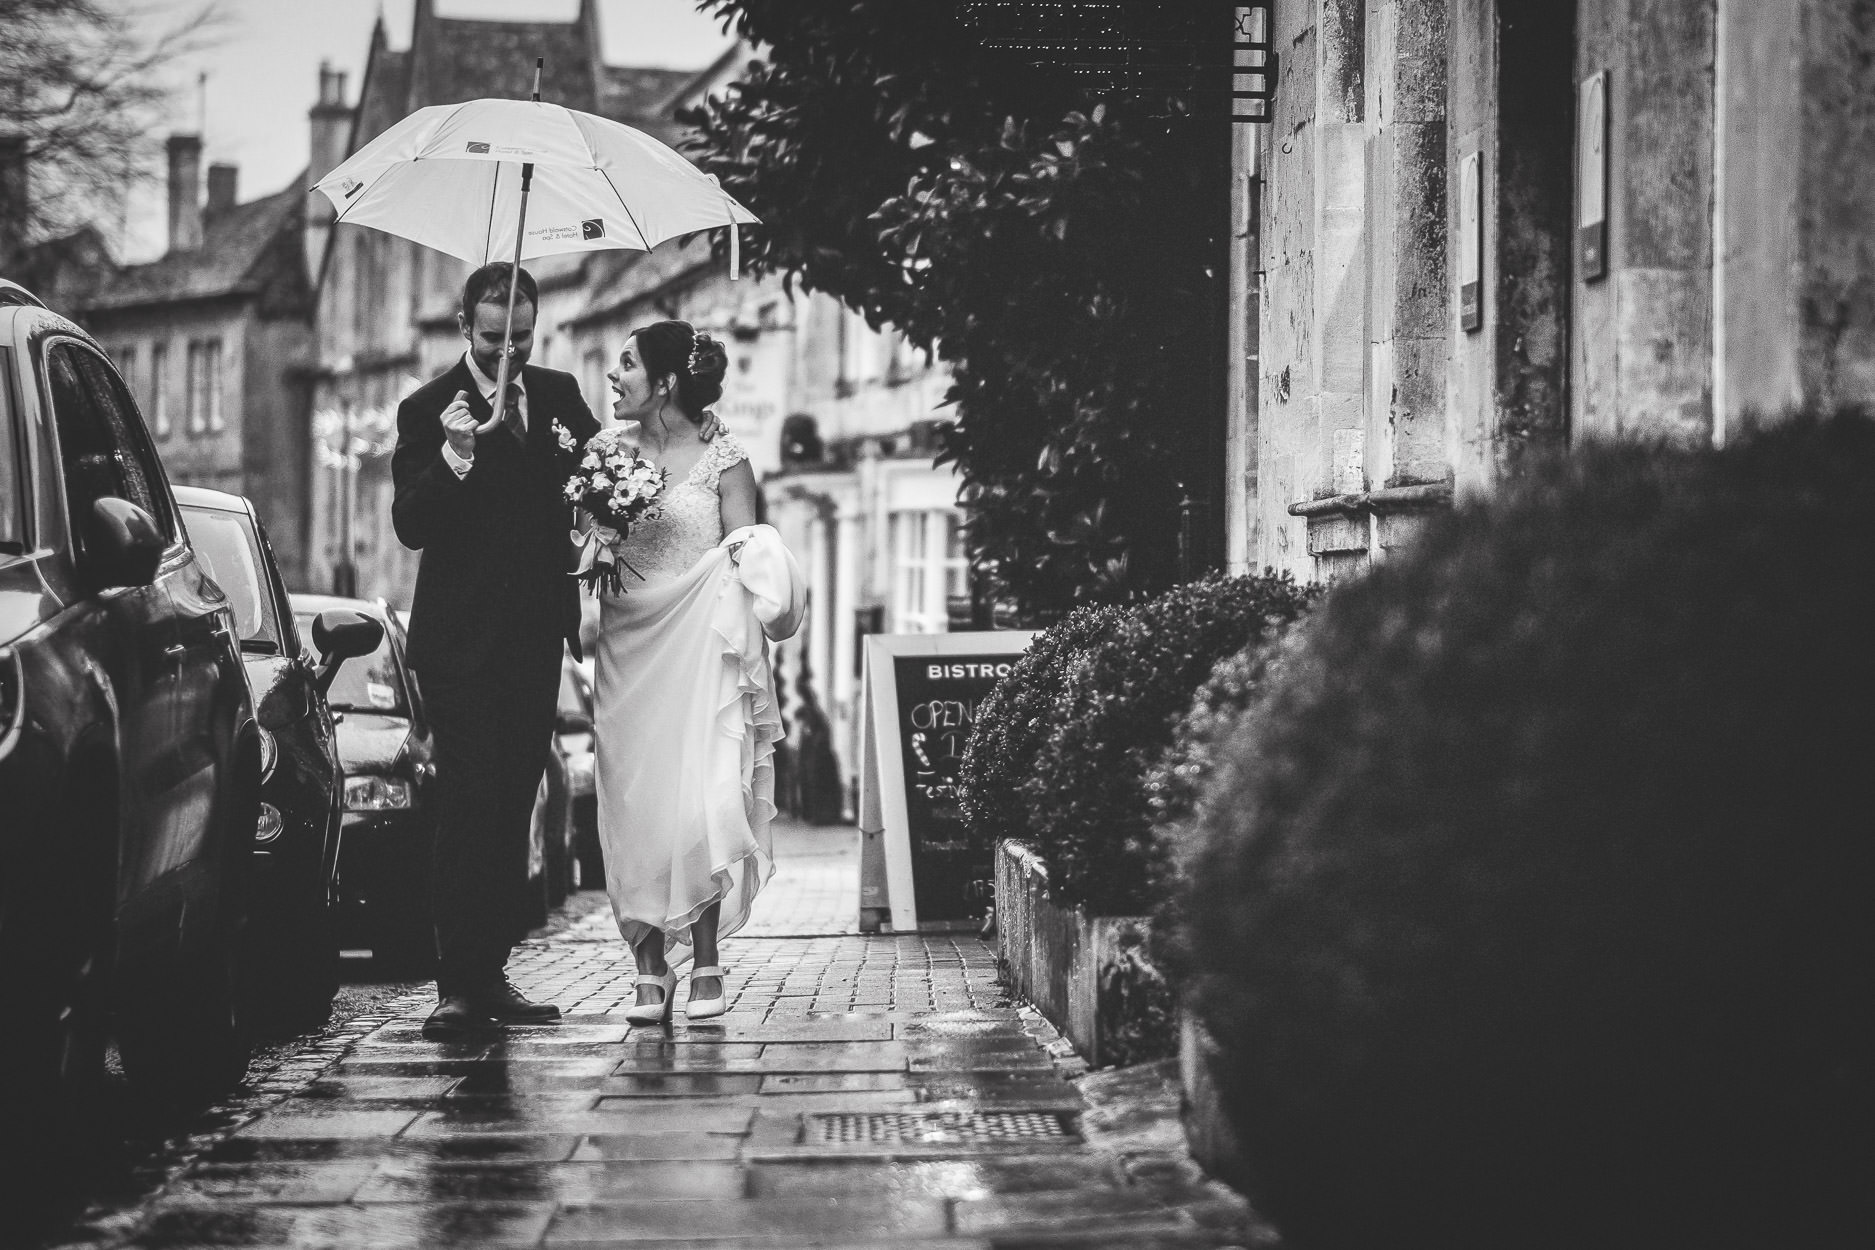 raining wedding photograph